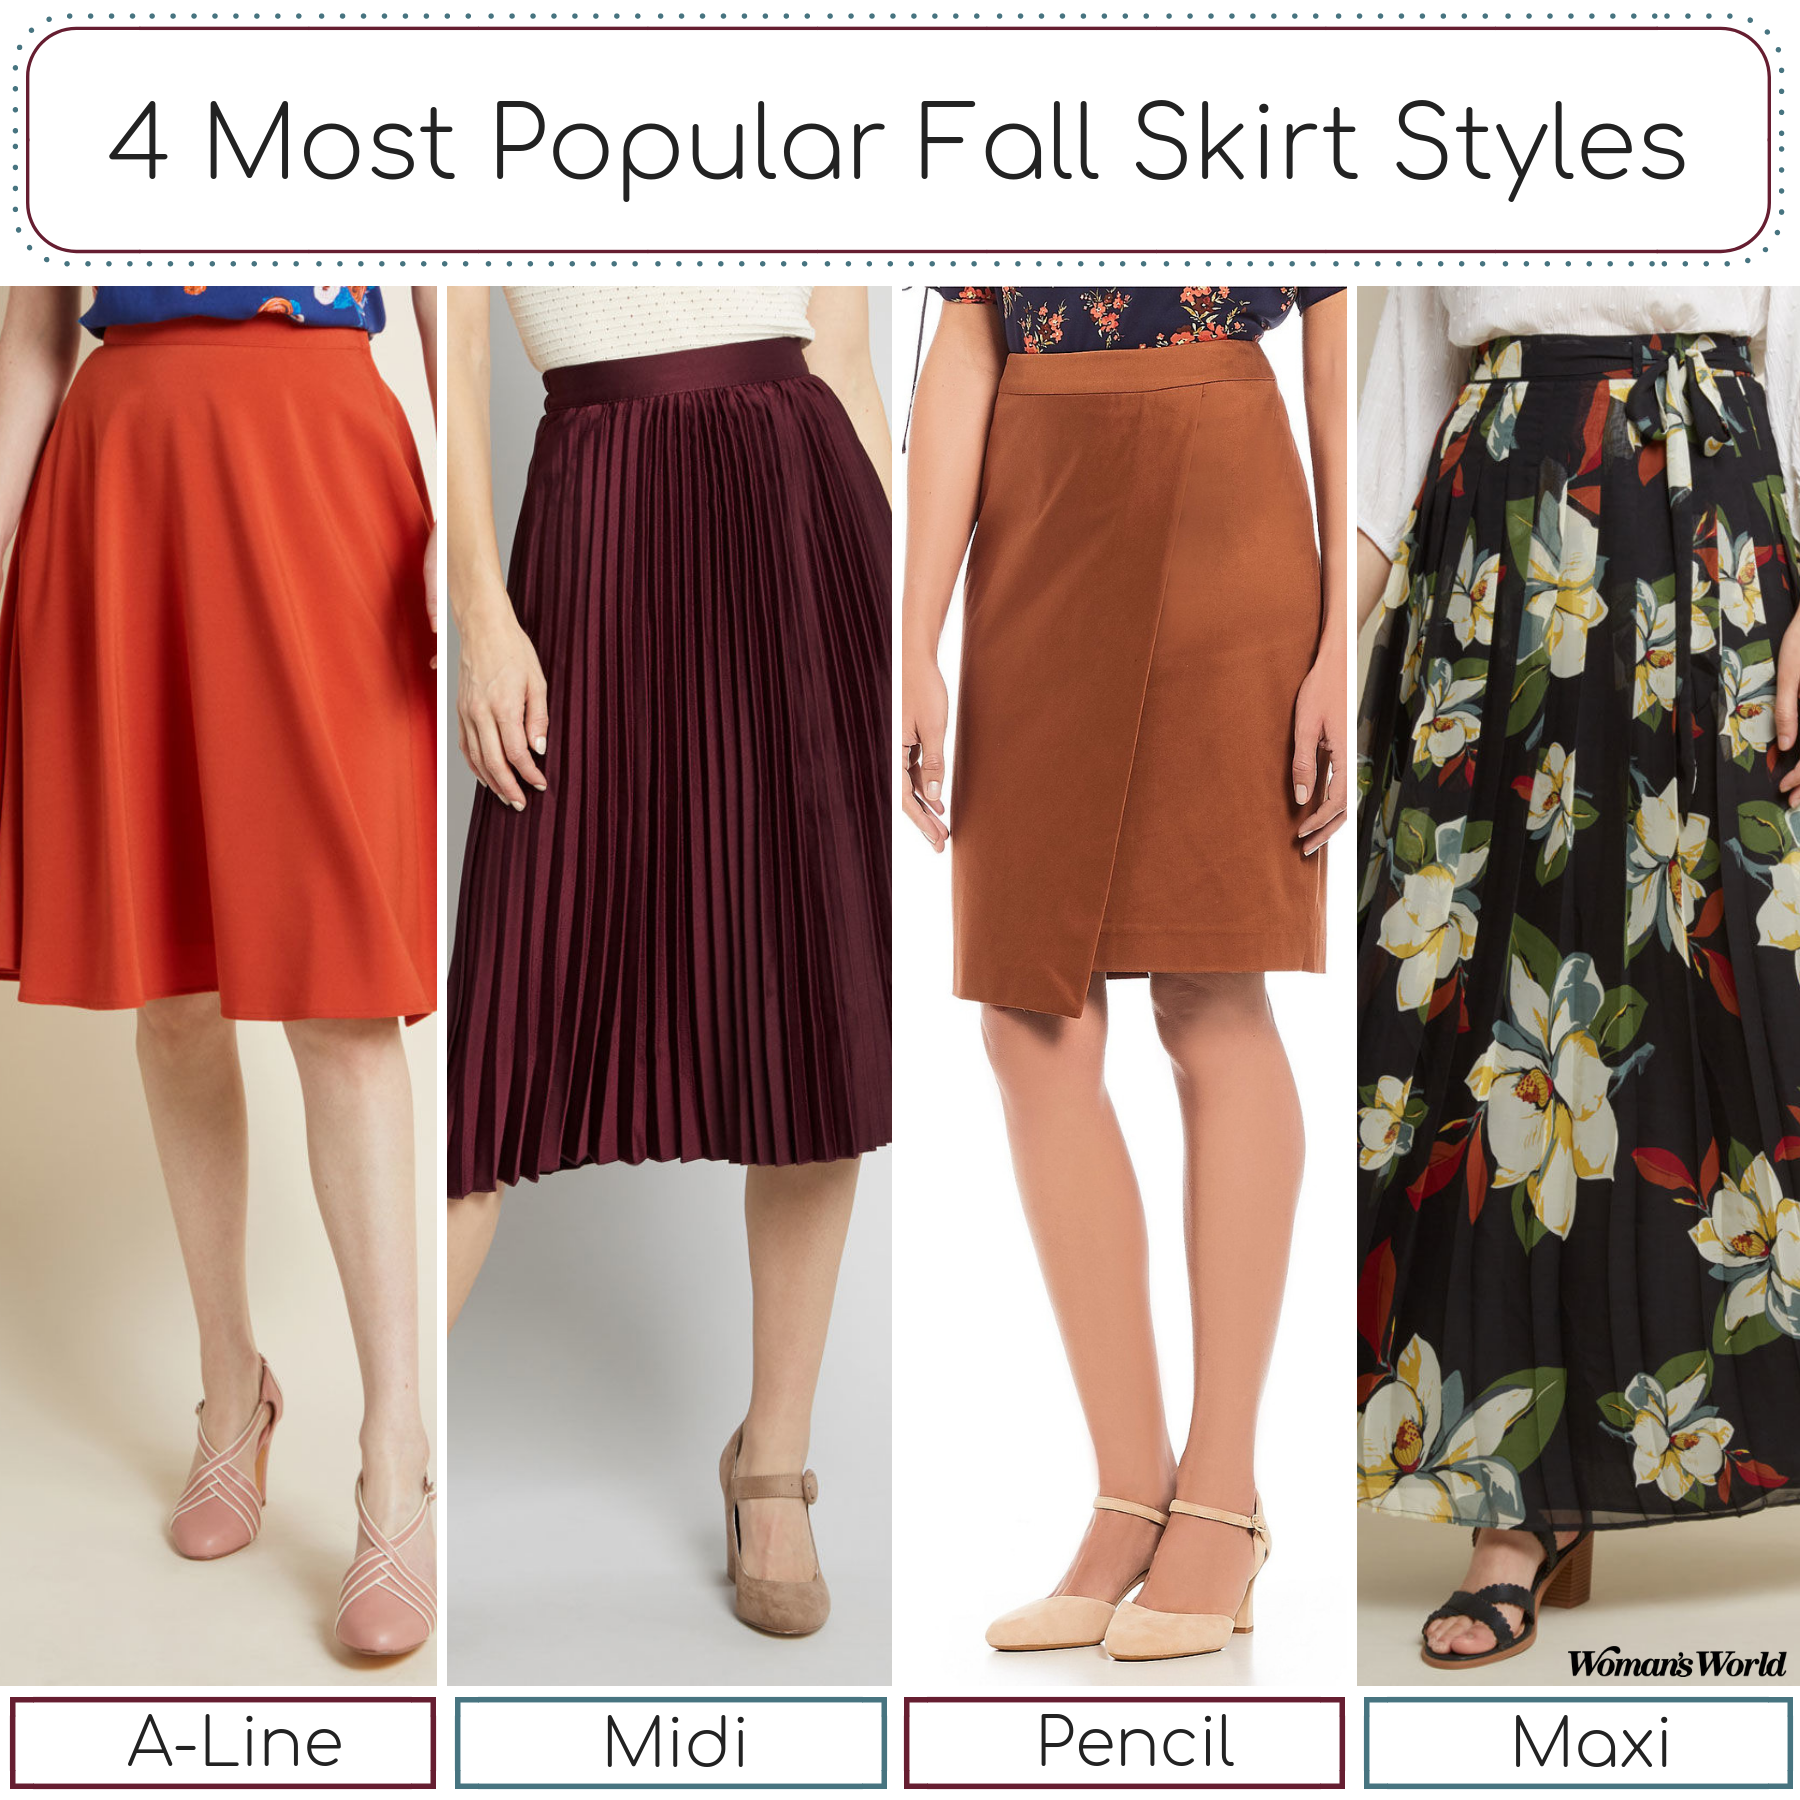 Best Popular Fall Skirt Style